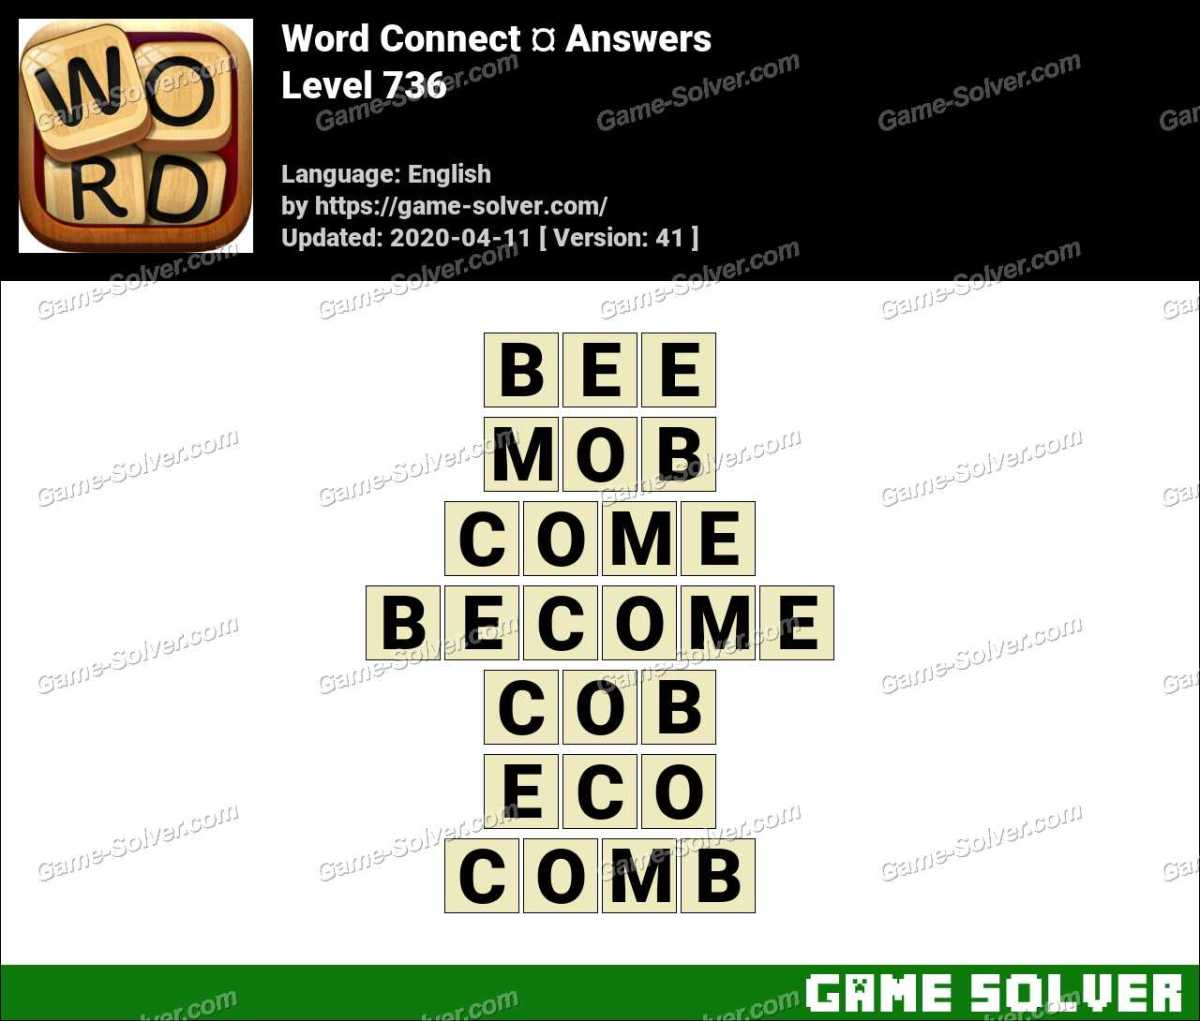 Word Connect Level 736 Answers